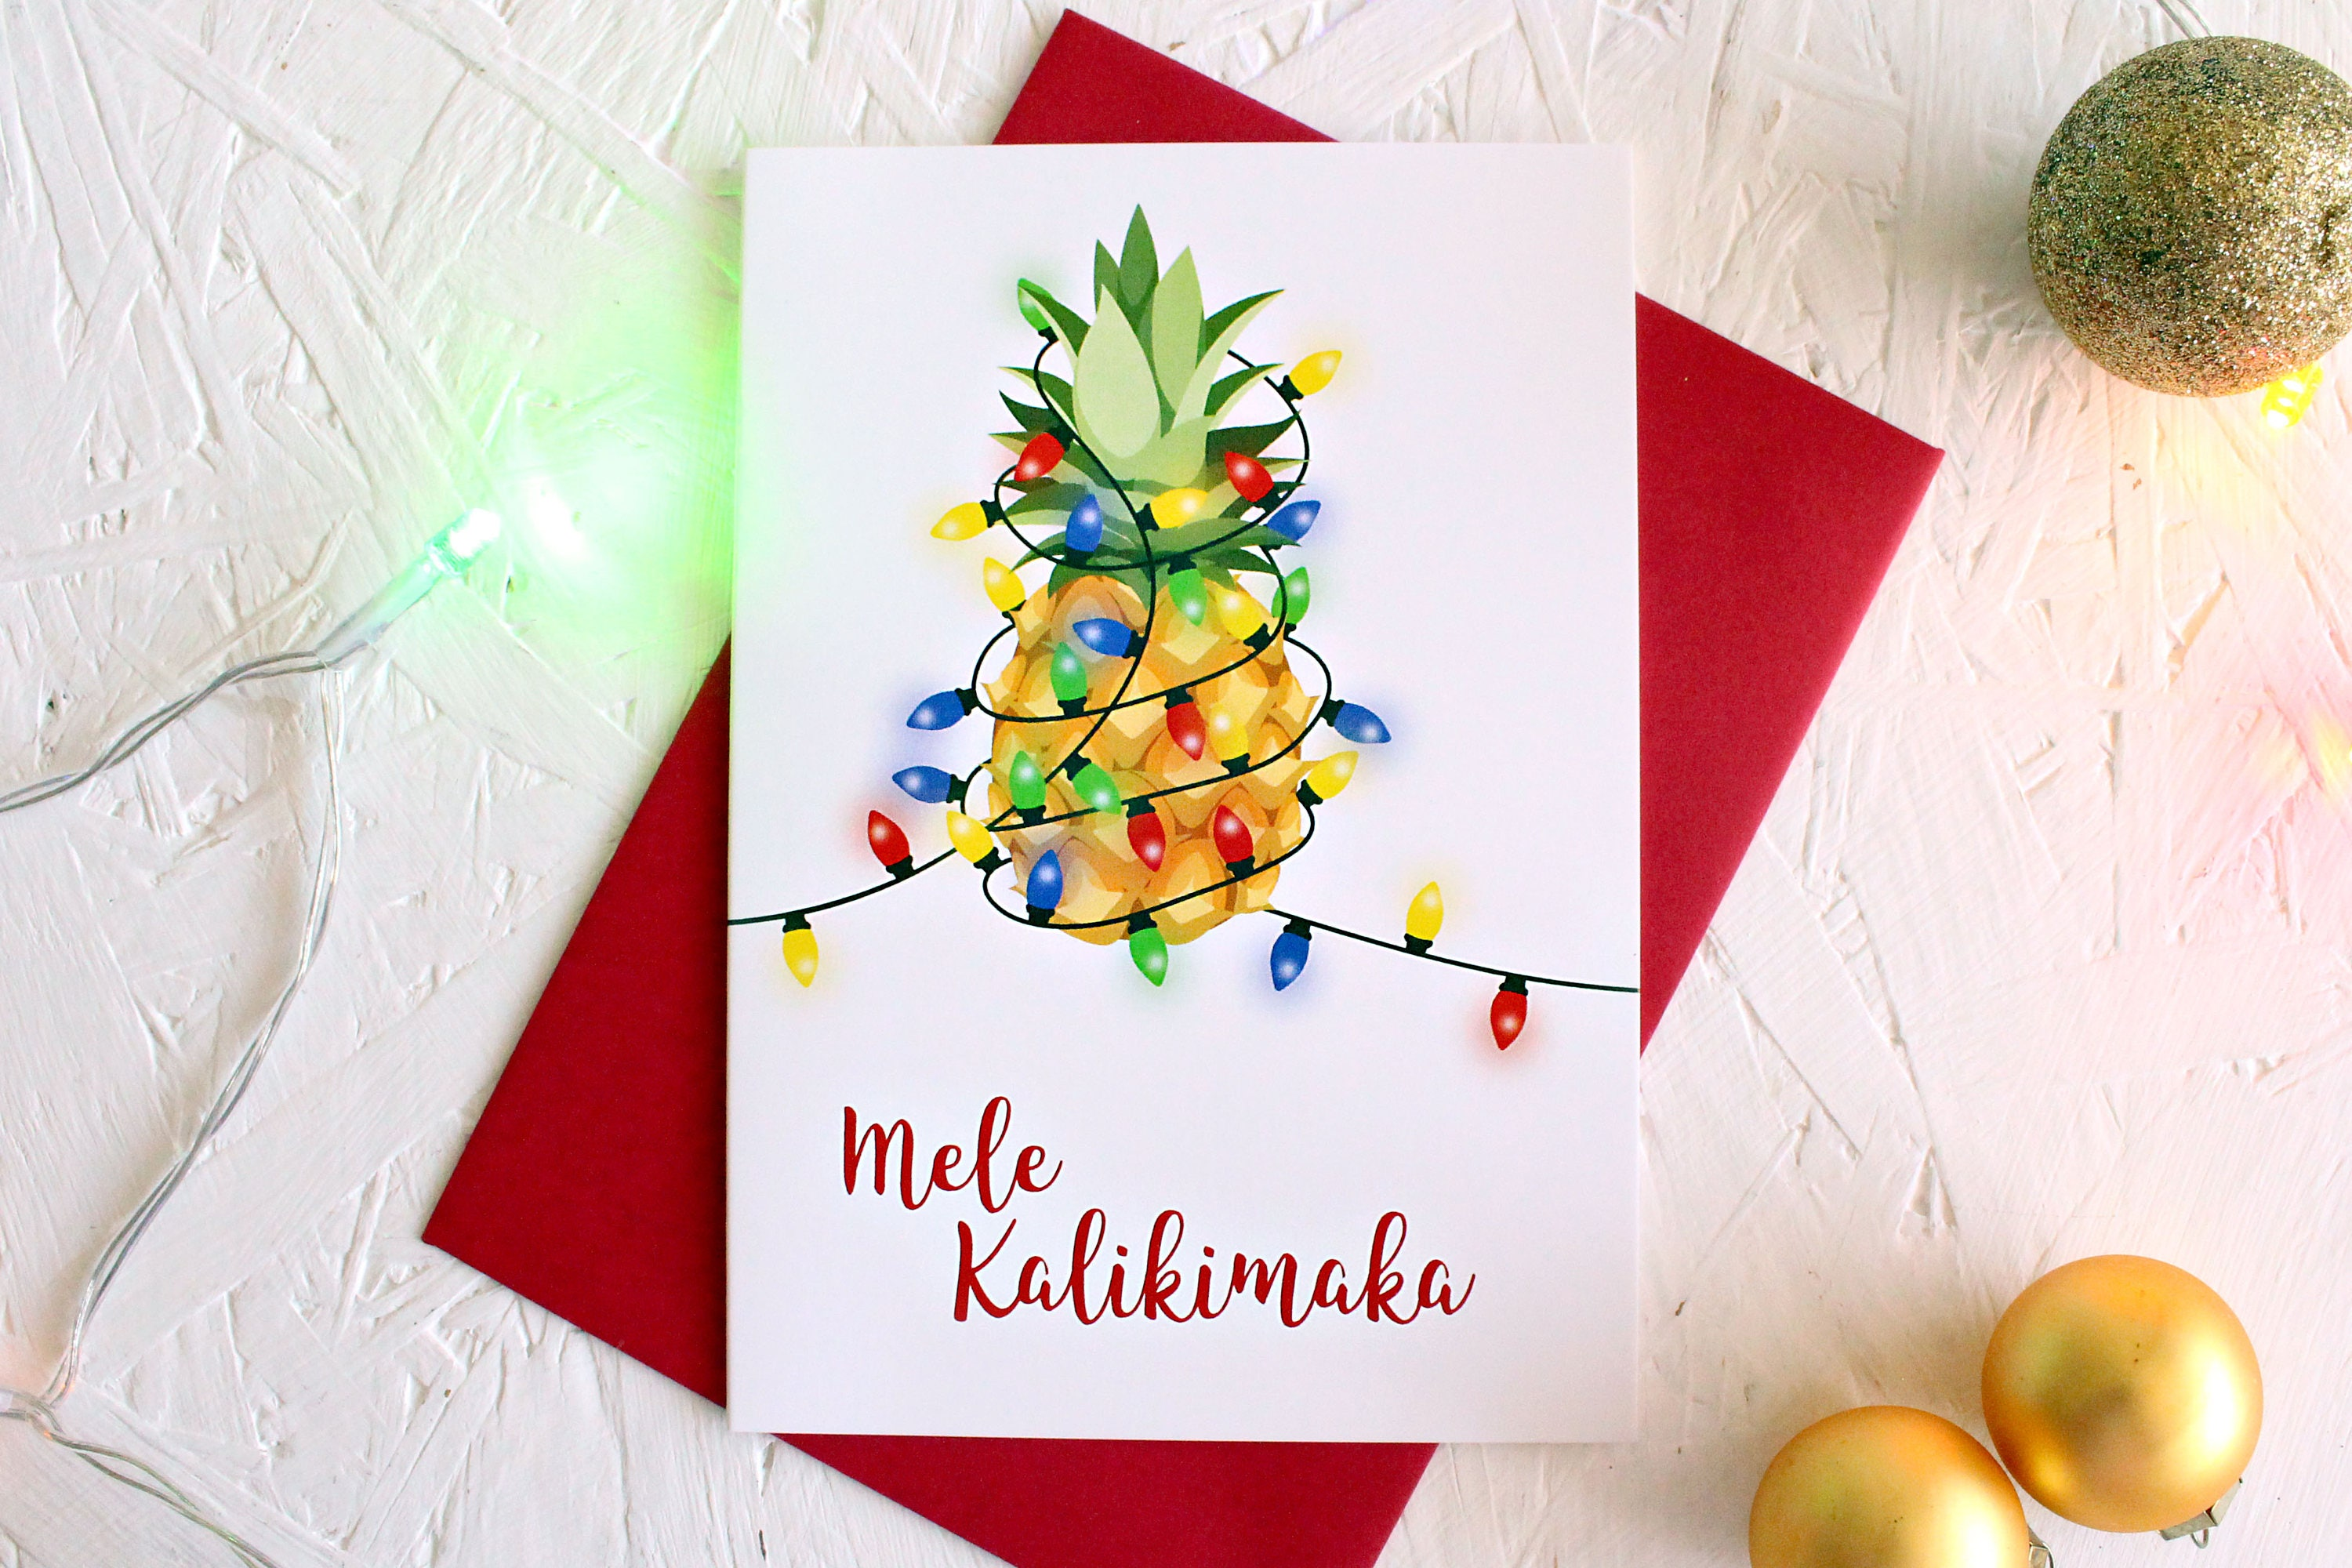 Mele Kalikimaka, Hawaiian Christmas Card, Merry Christmas, Christmas Lights, Christmas Greetings, Happy Holiday, Christmas Card, Pineapple